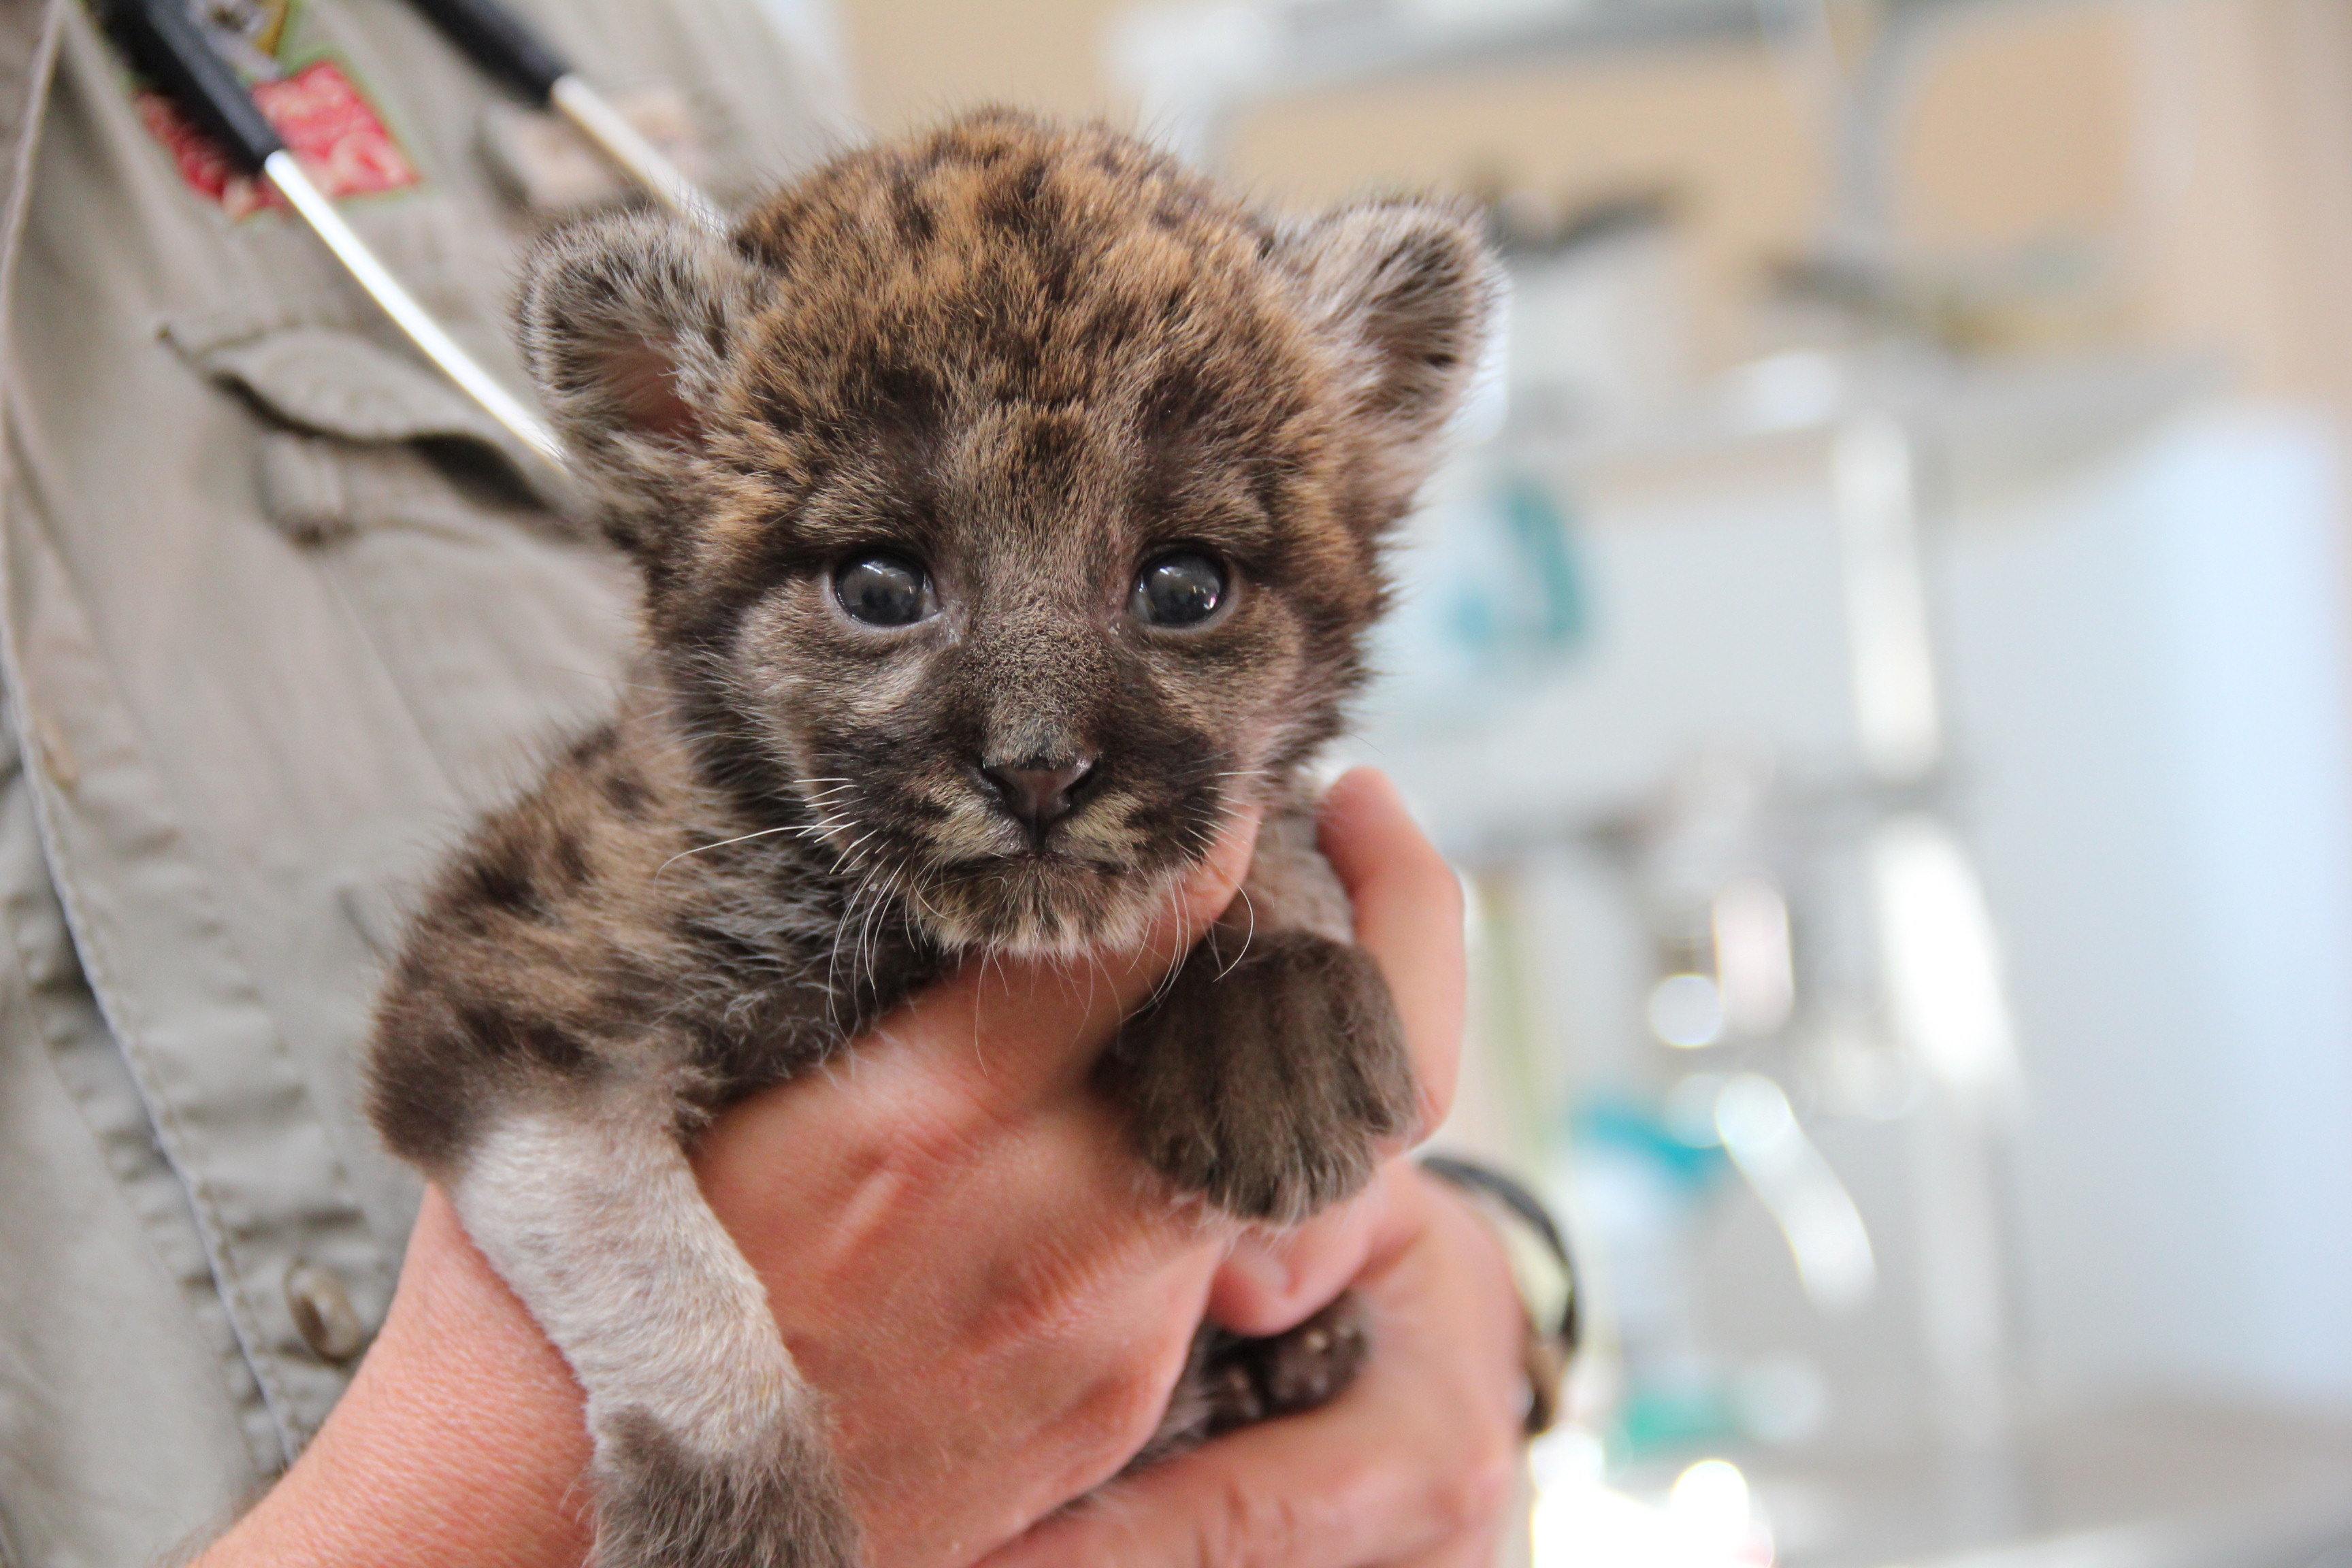 In 2014, Florida Fish and Wildlife rescued this panther kitten.